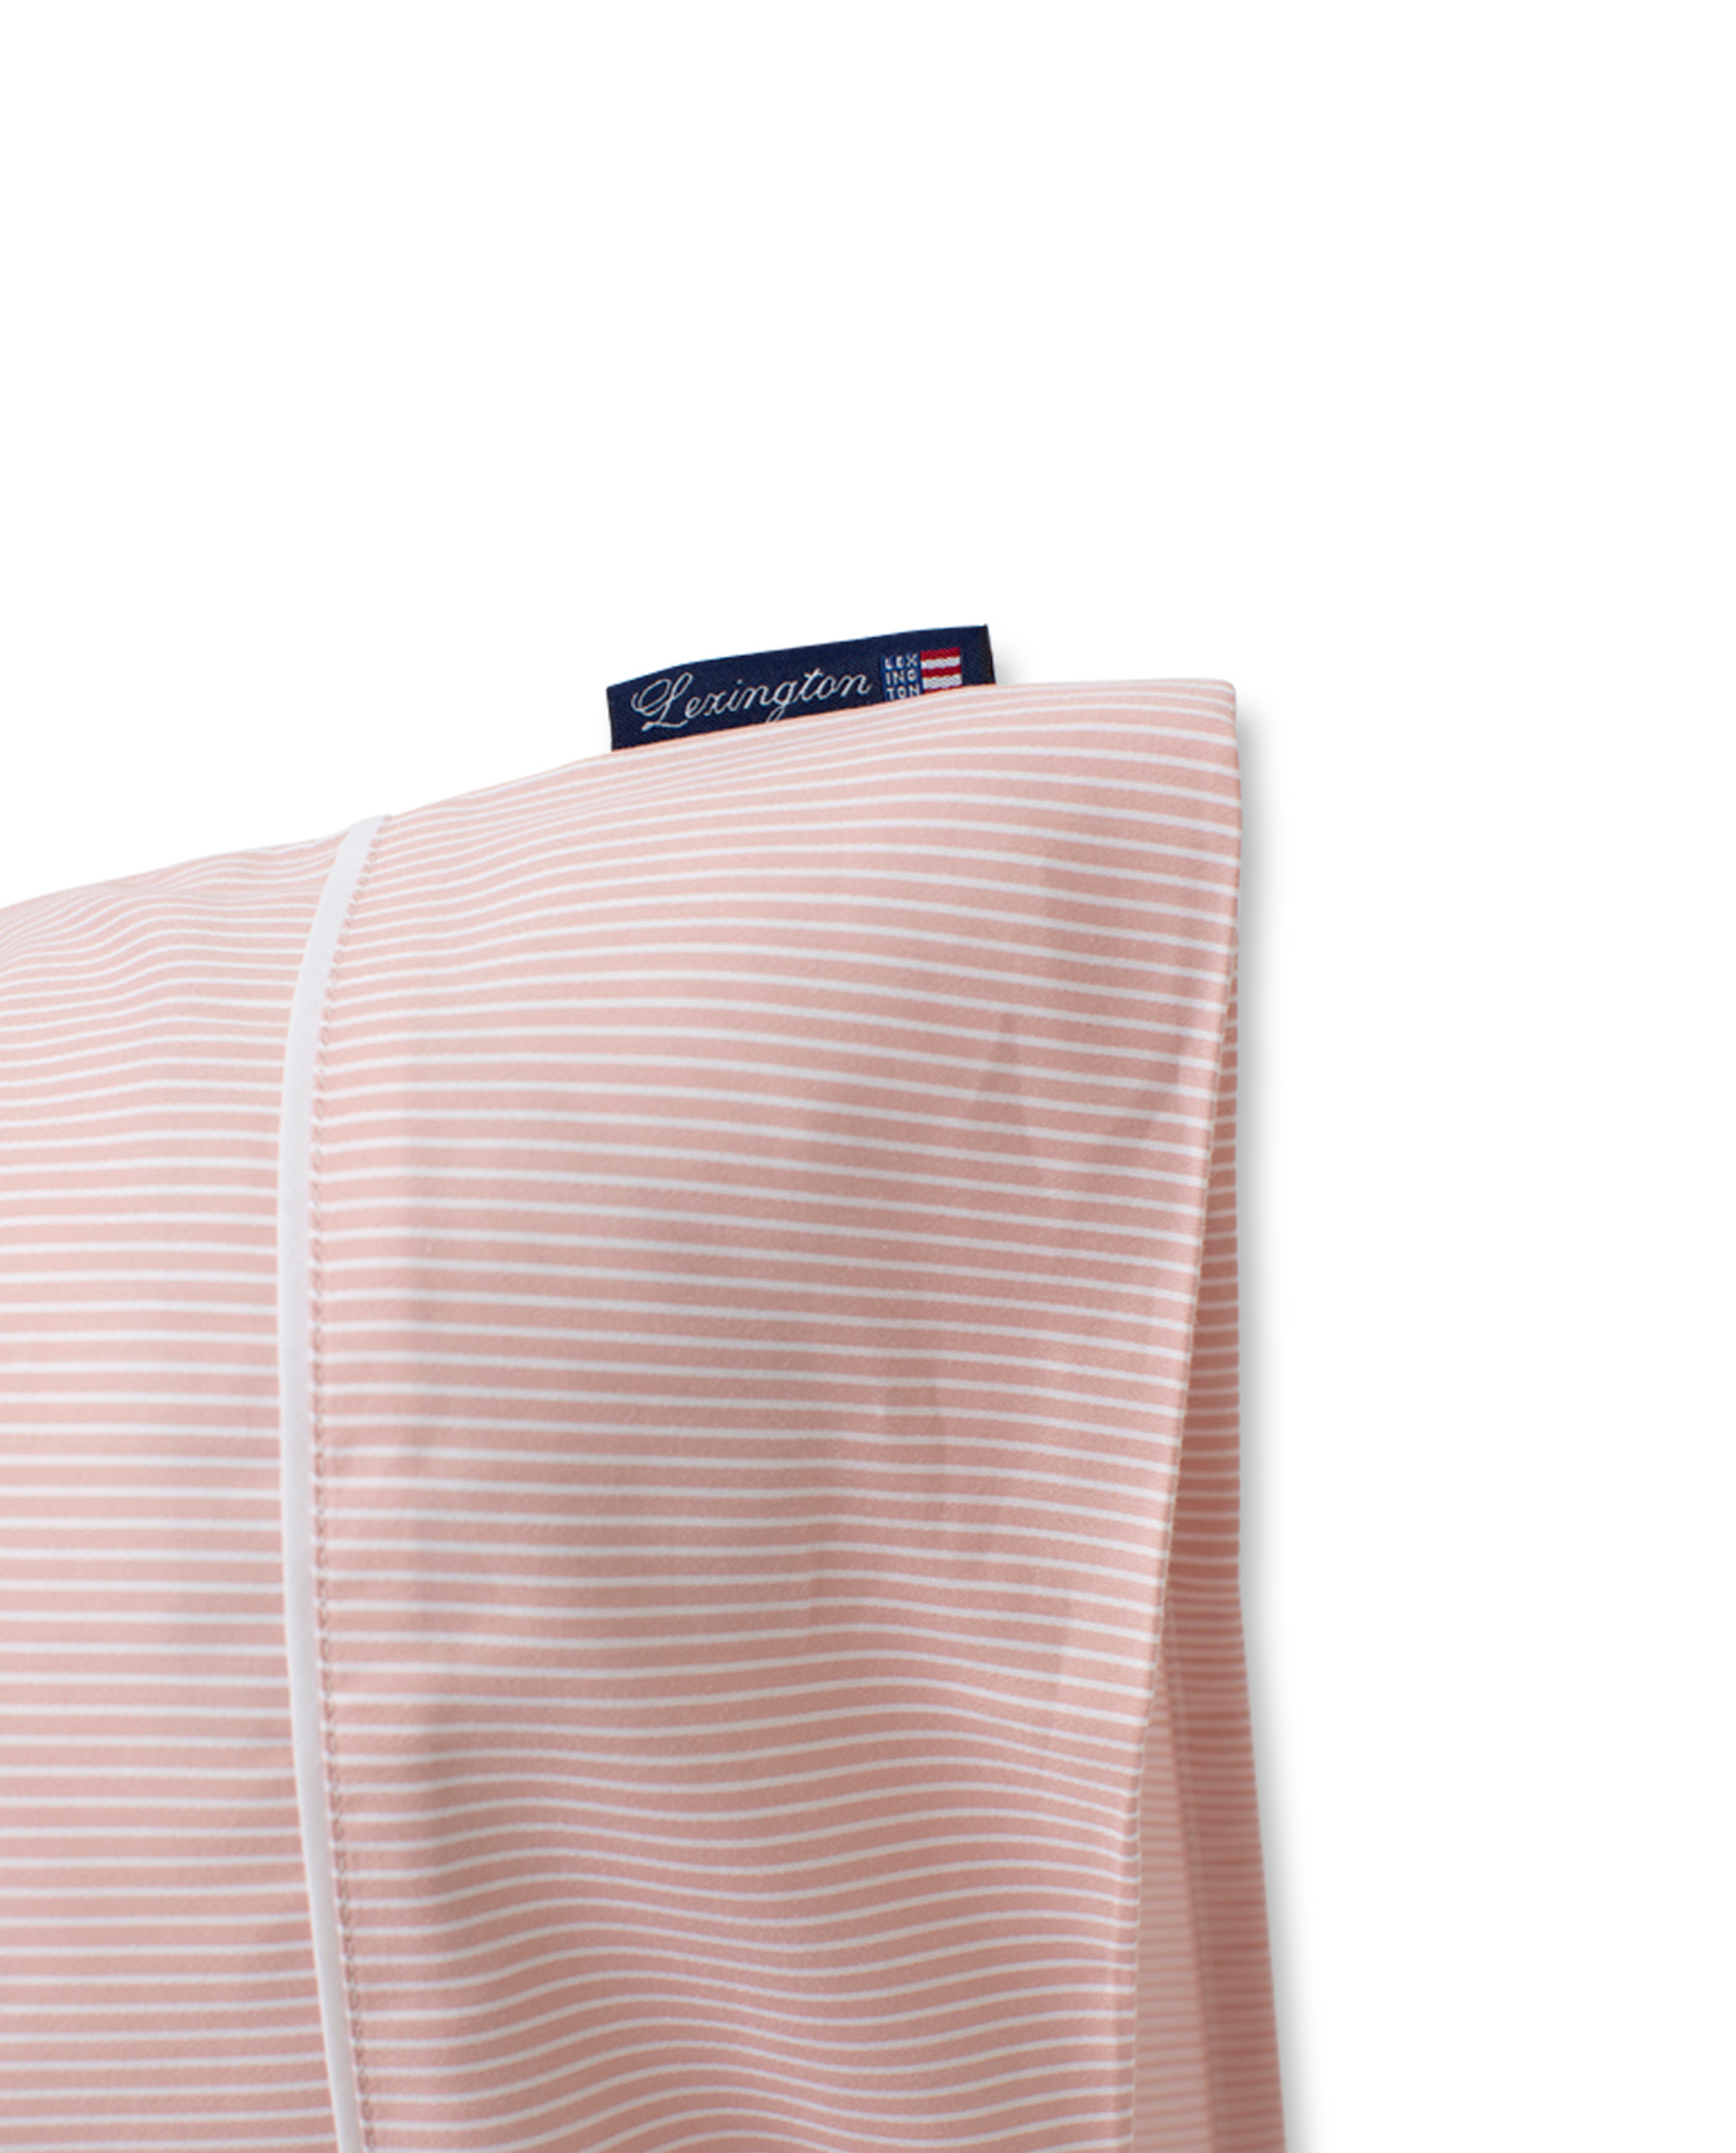 Pink/White Striped Lyocell/Cotton Pillowcase